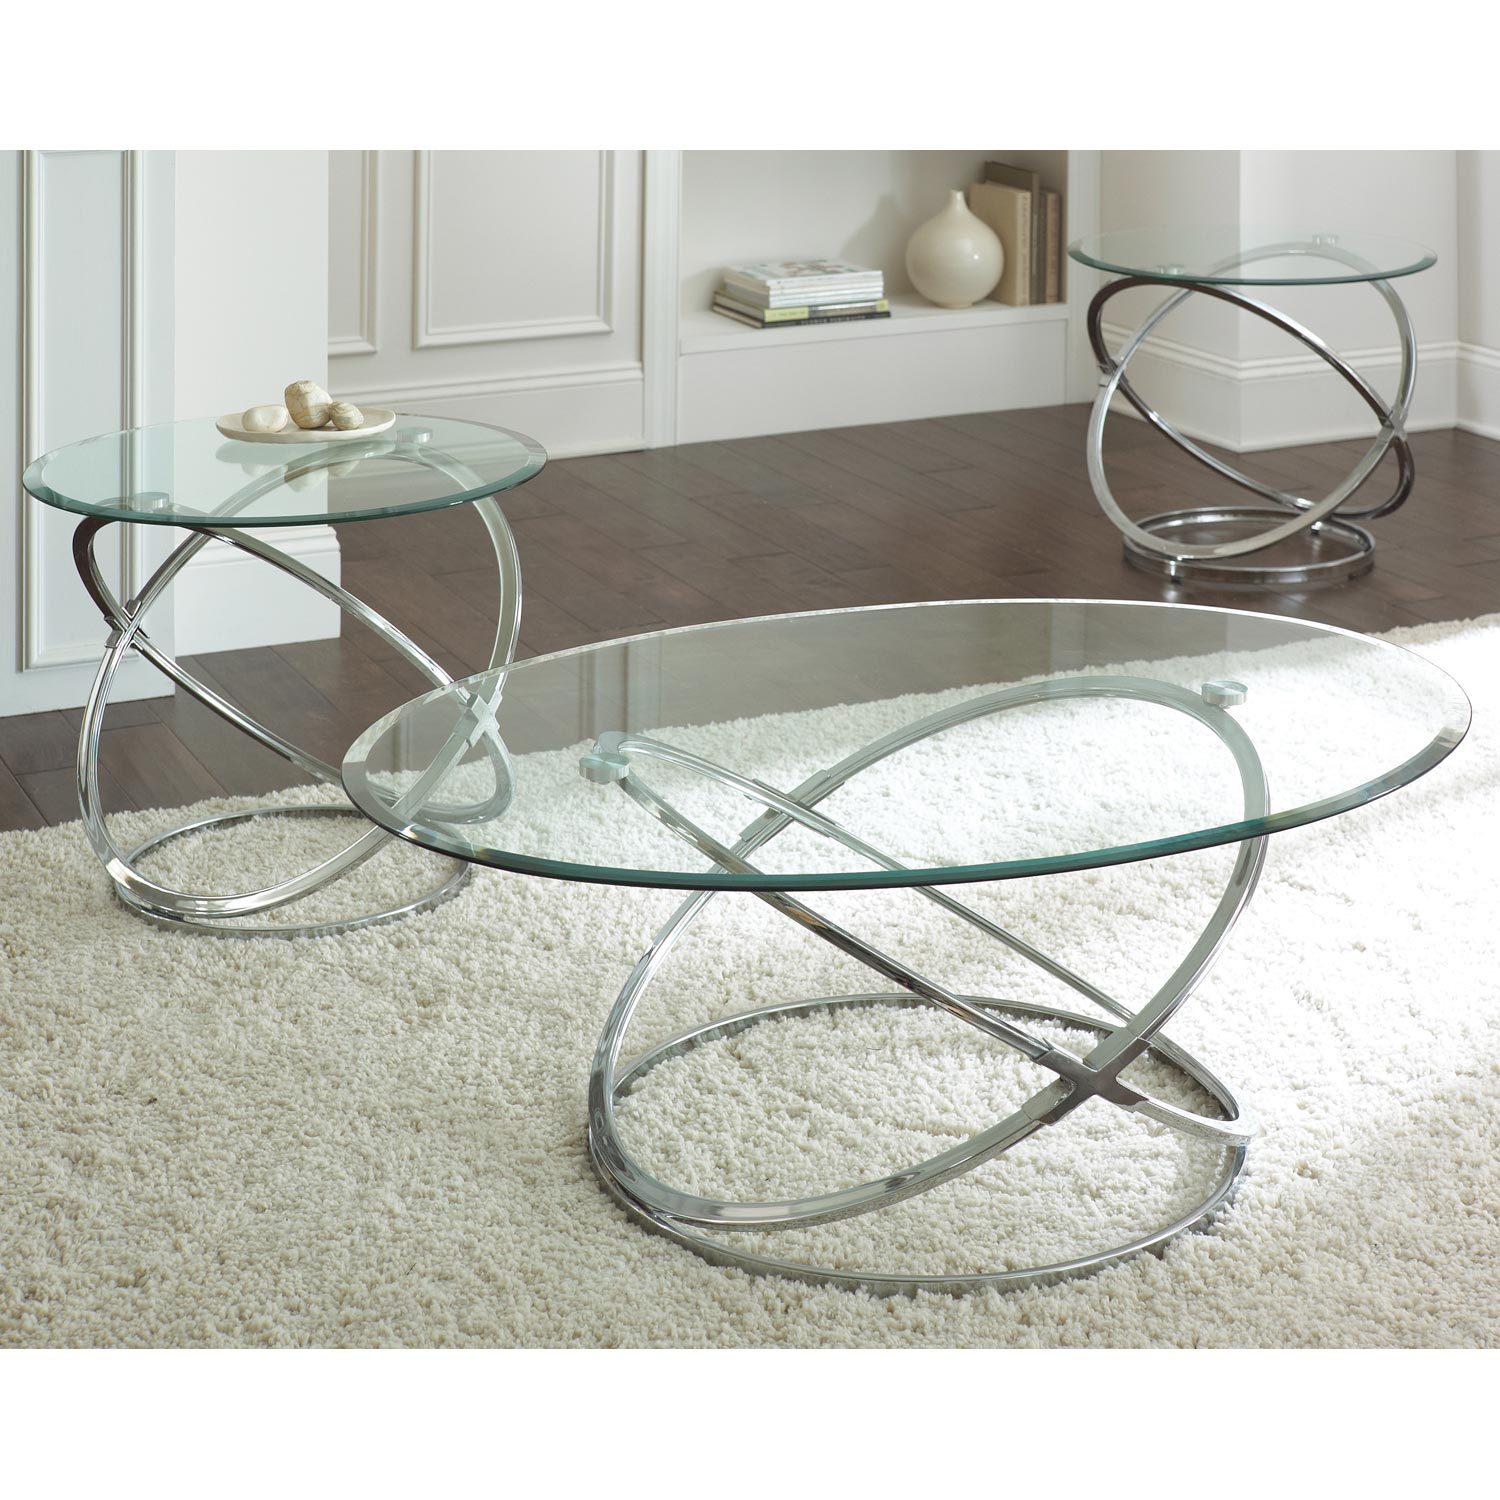 Orion 3 Piece Coffee Table Set   Glass, Chrome Rings Base   SSC RN3000T ...